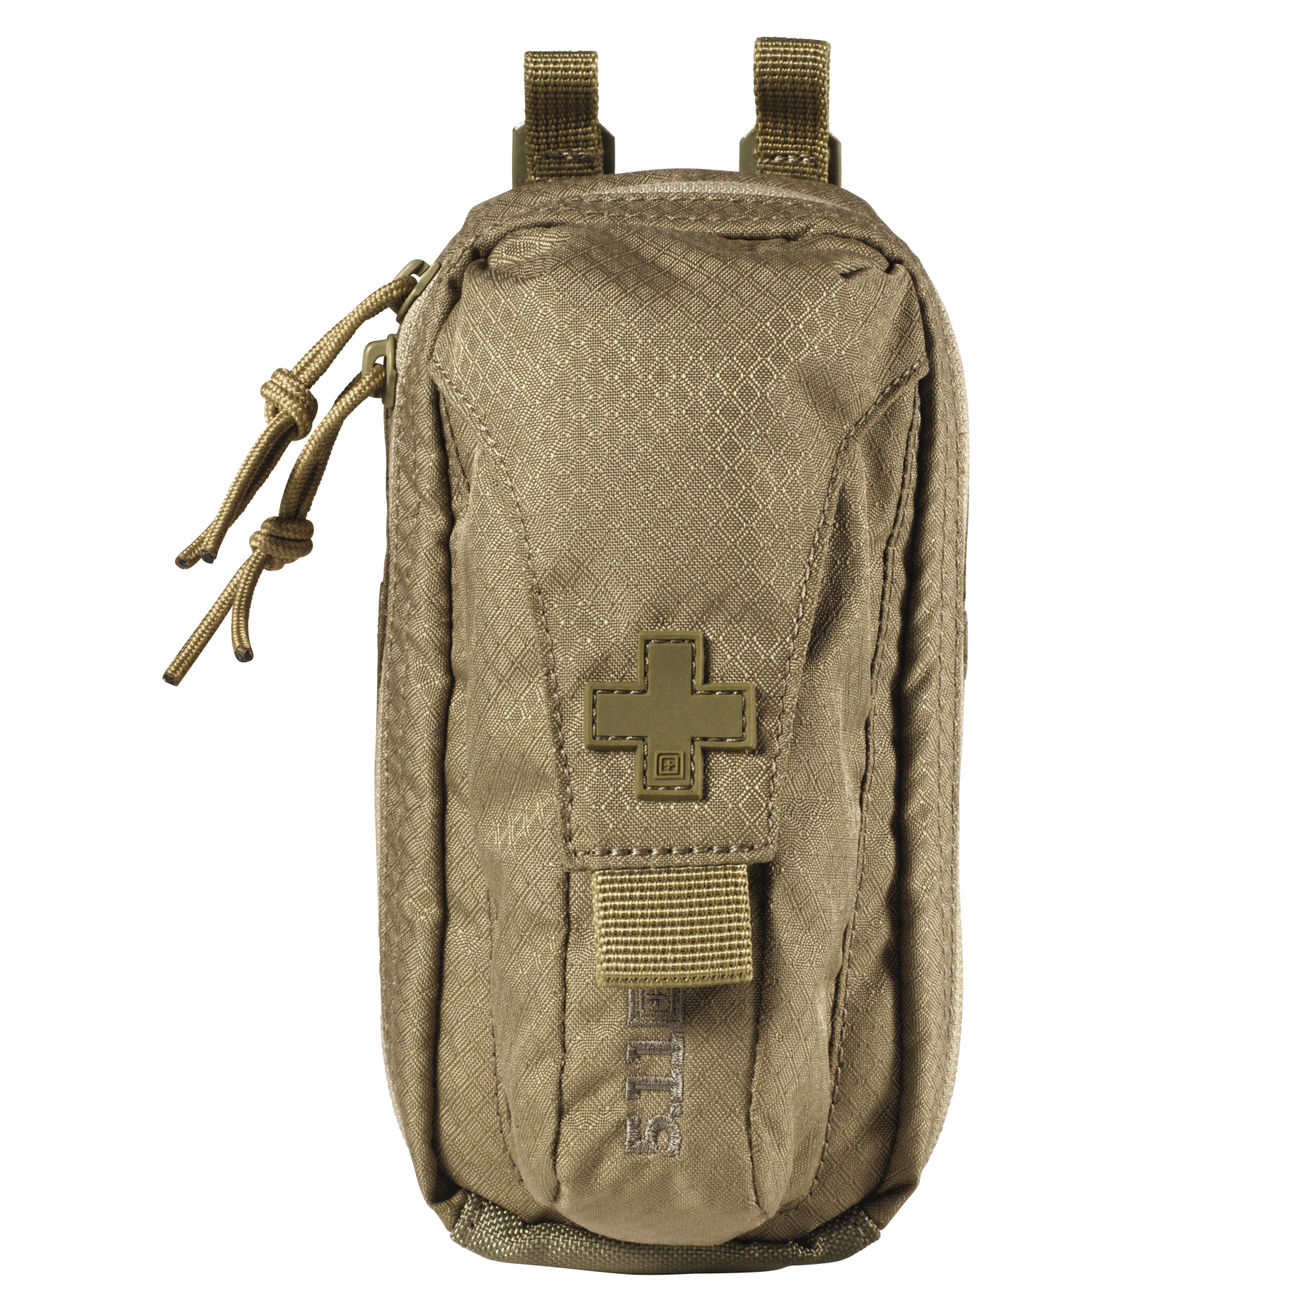 5.11 Ignitor Med Pouch sandstone 2